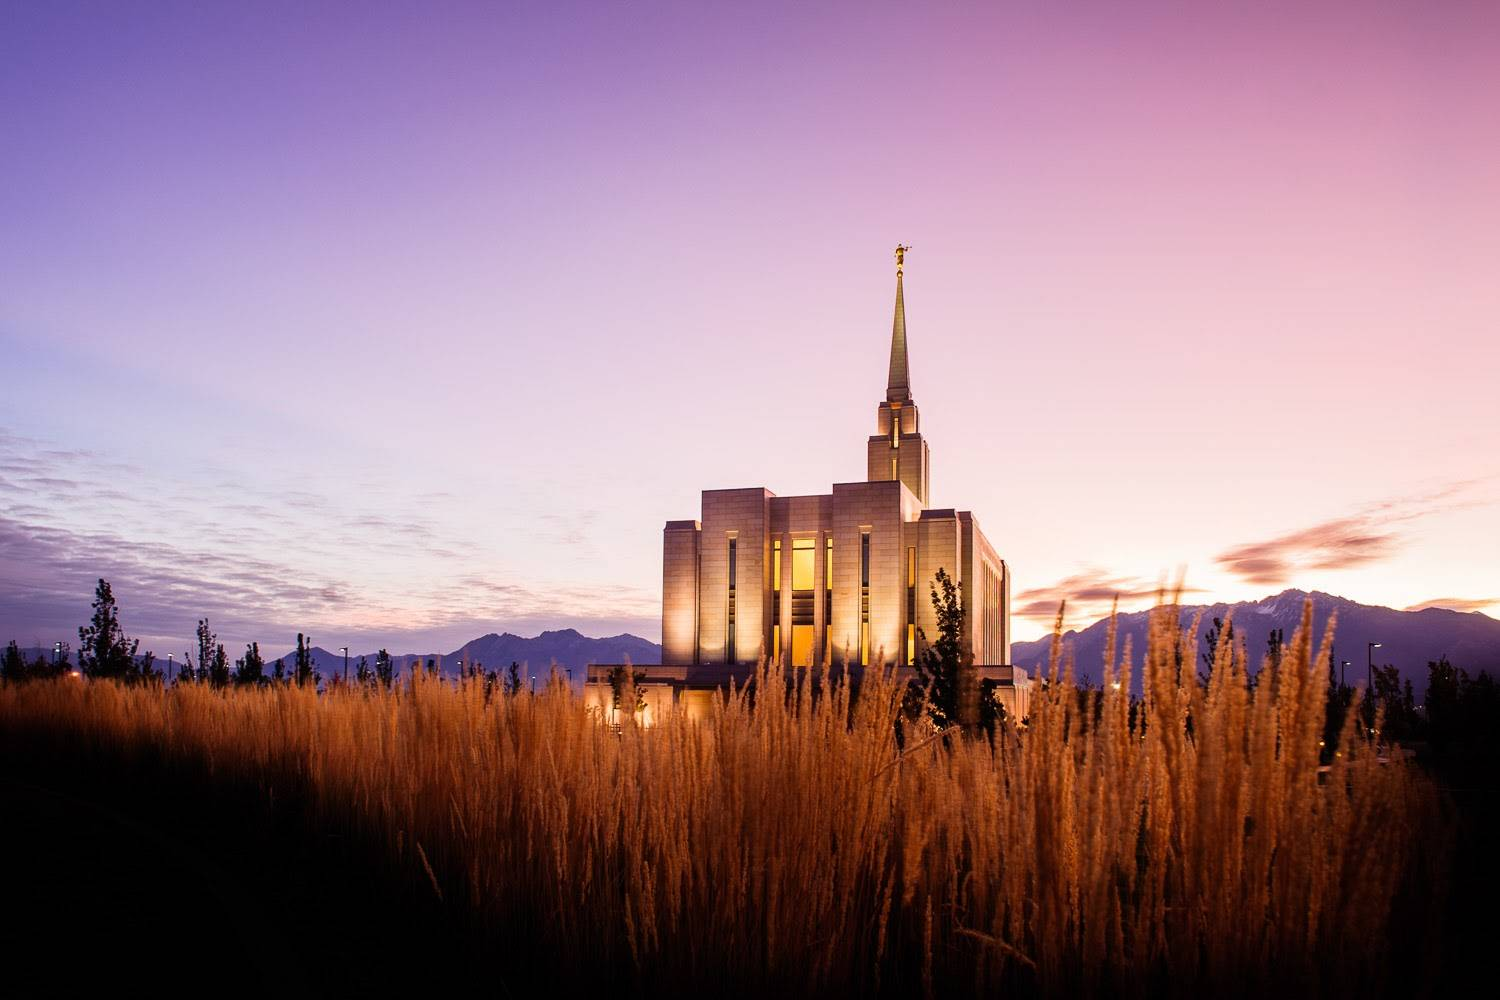 Panoramic photo of the Oquirrh Mountain Utah LDS Temple against a purple sky and surrounded by a field.